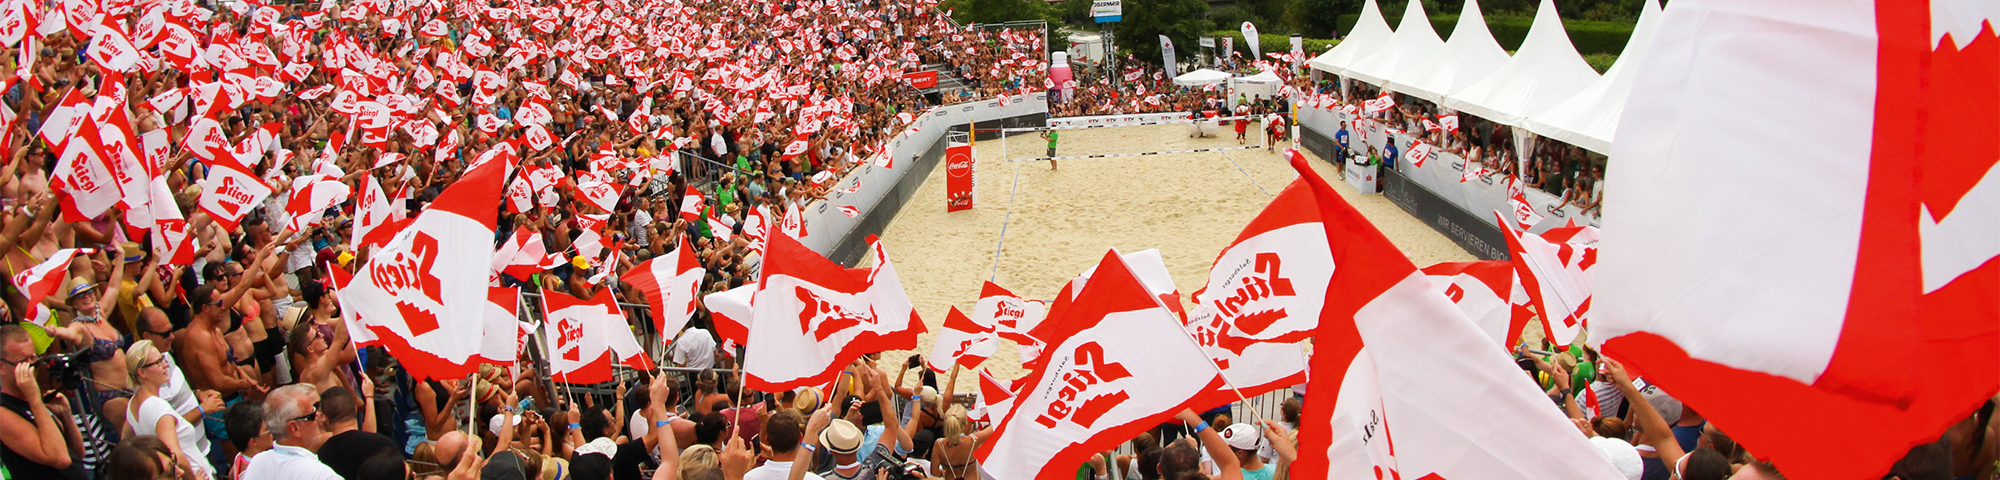 Austrian Beach Tour Header 06 © PRO Beach Battle / Austrian Beachtour